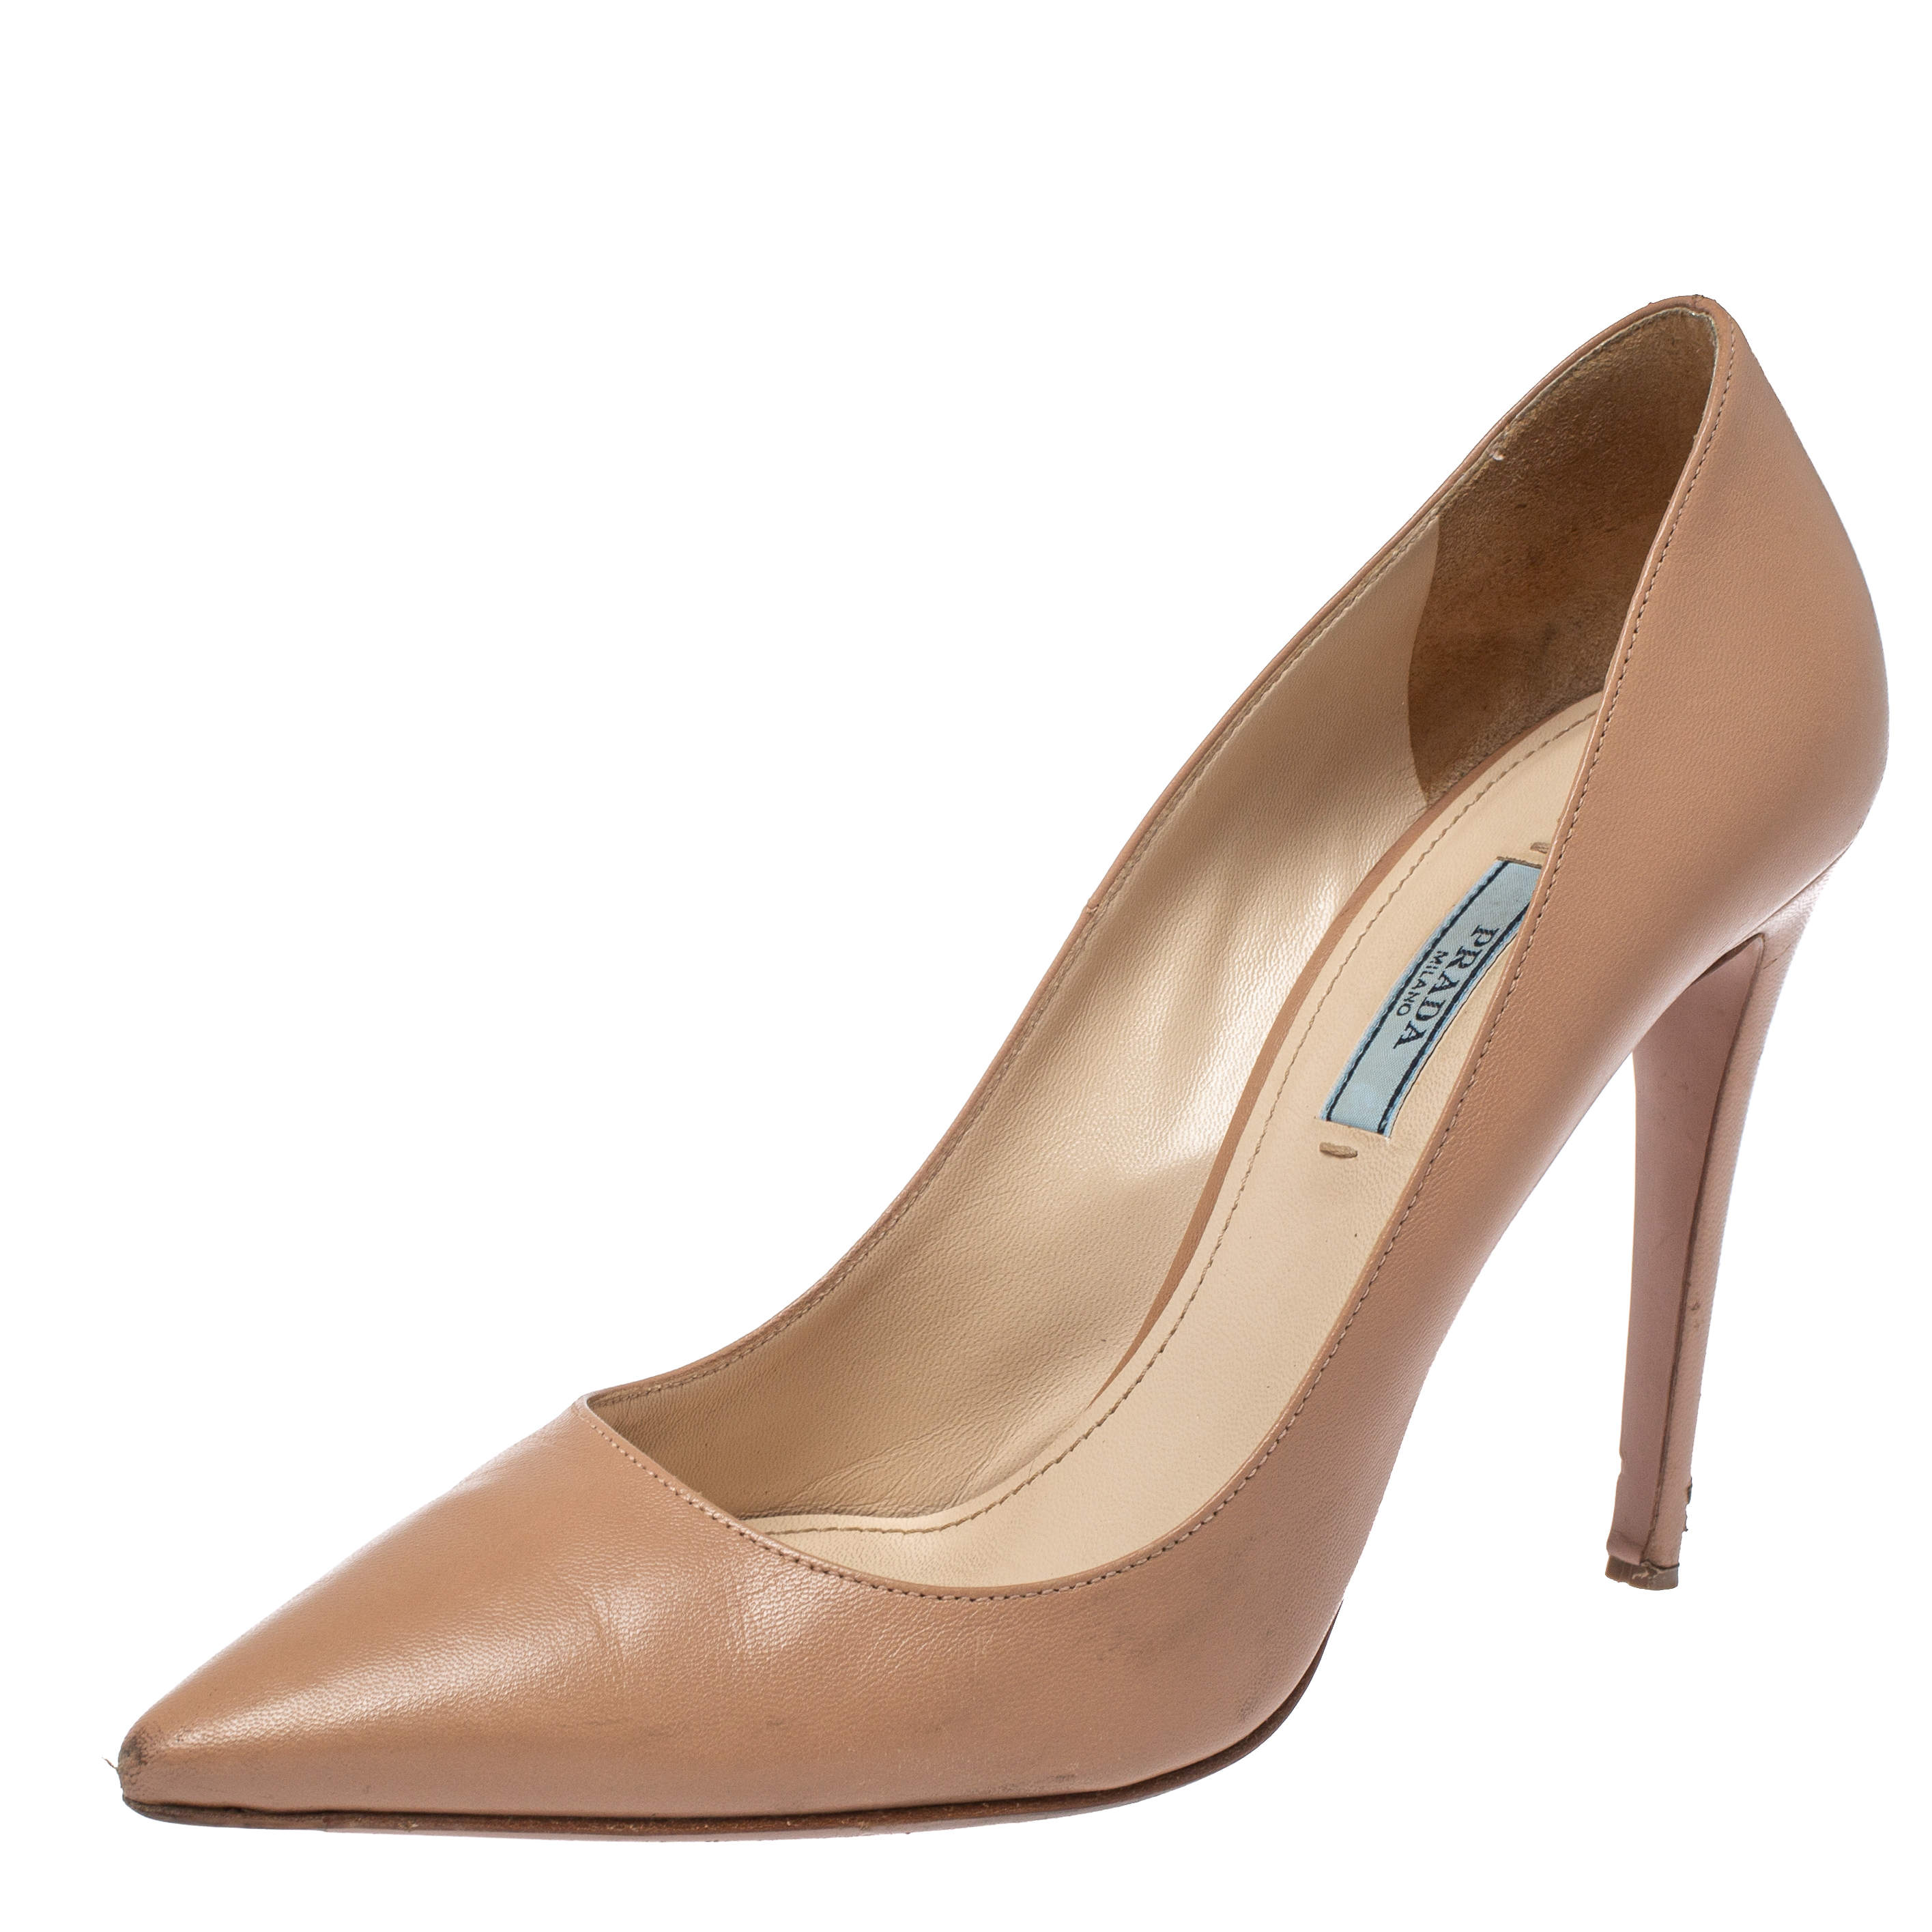 Prada Beige Leather Pointed Toe Pumps Size 39.5